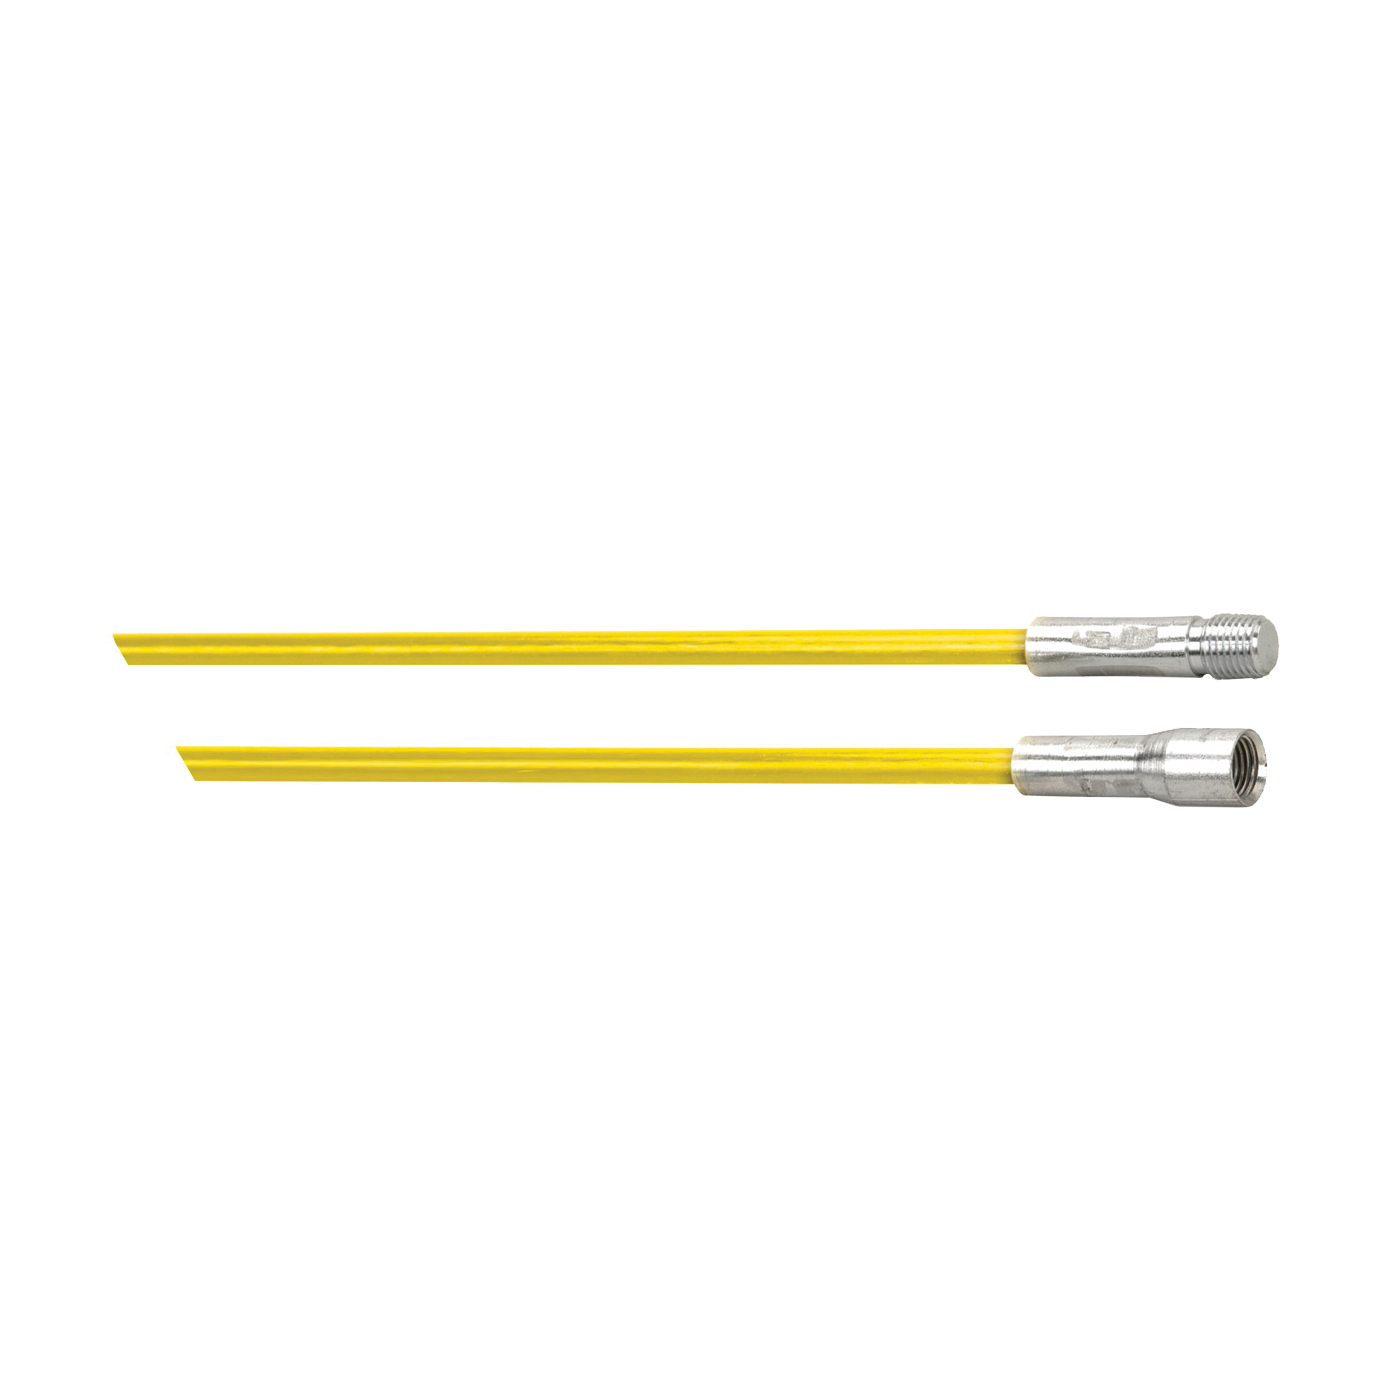 Picture of Imperial BR0005 Extension Rod, 79 in L, 3/8 in Connection, NPSM Male x Female Thread, Fiberglass